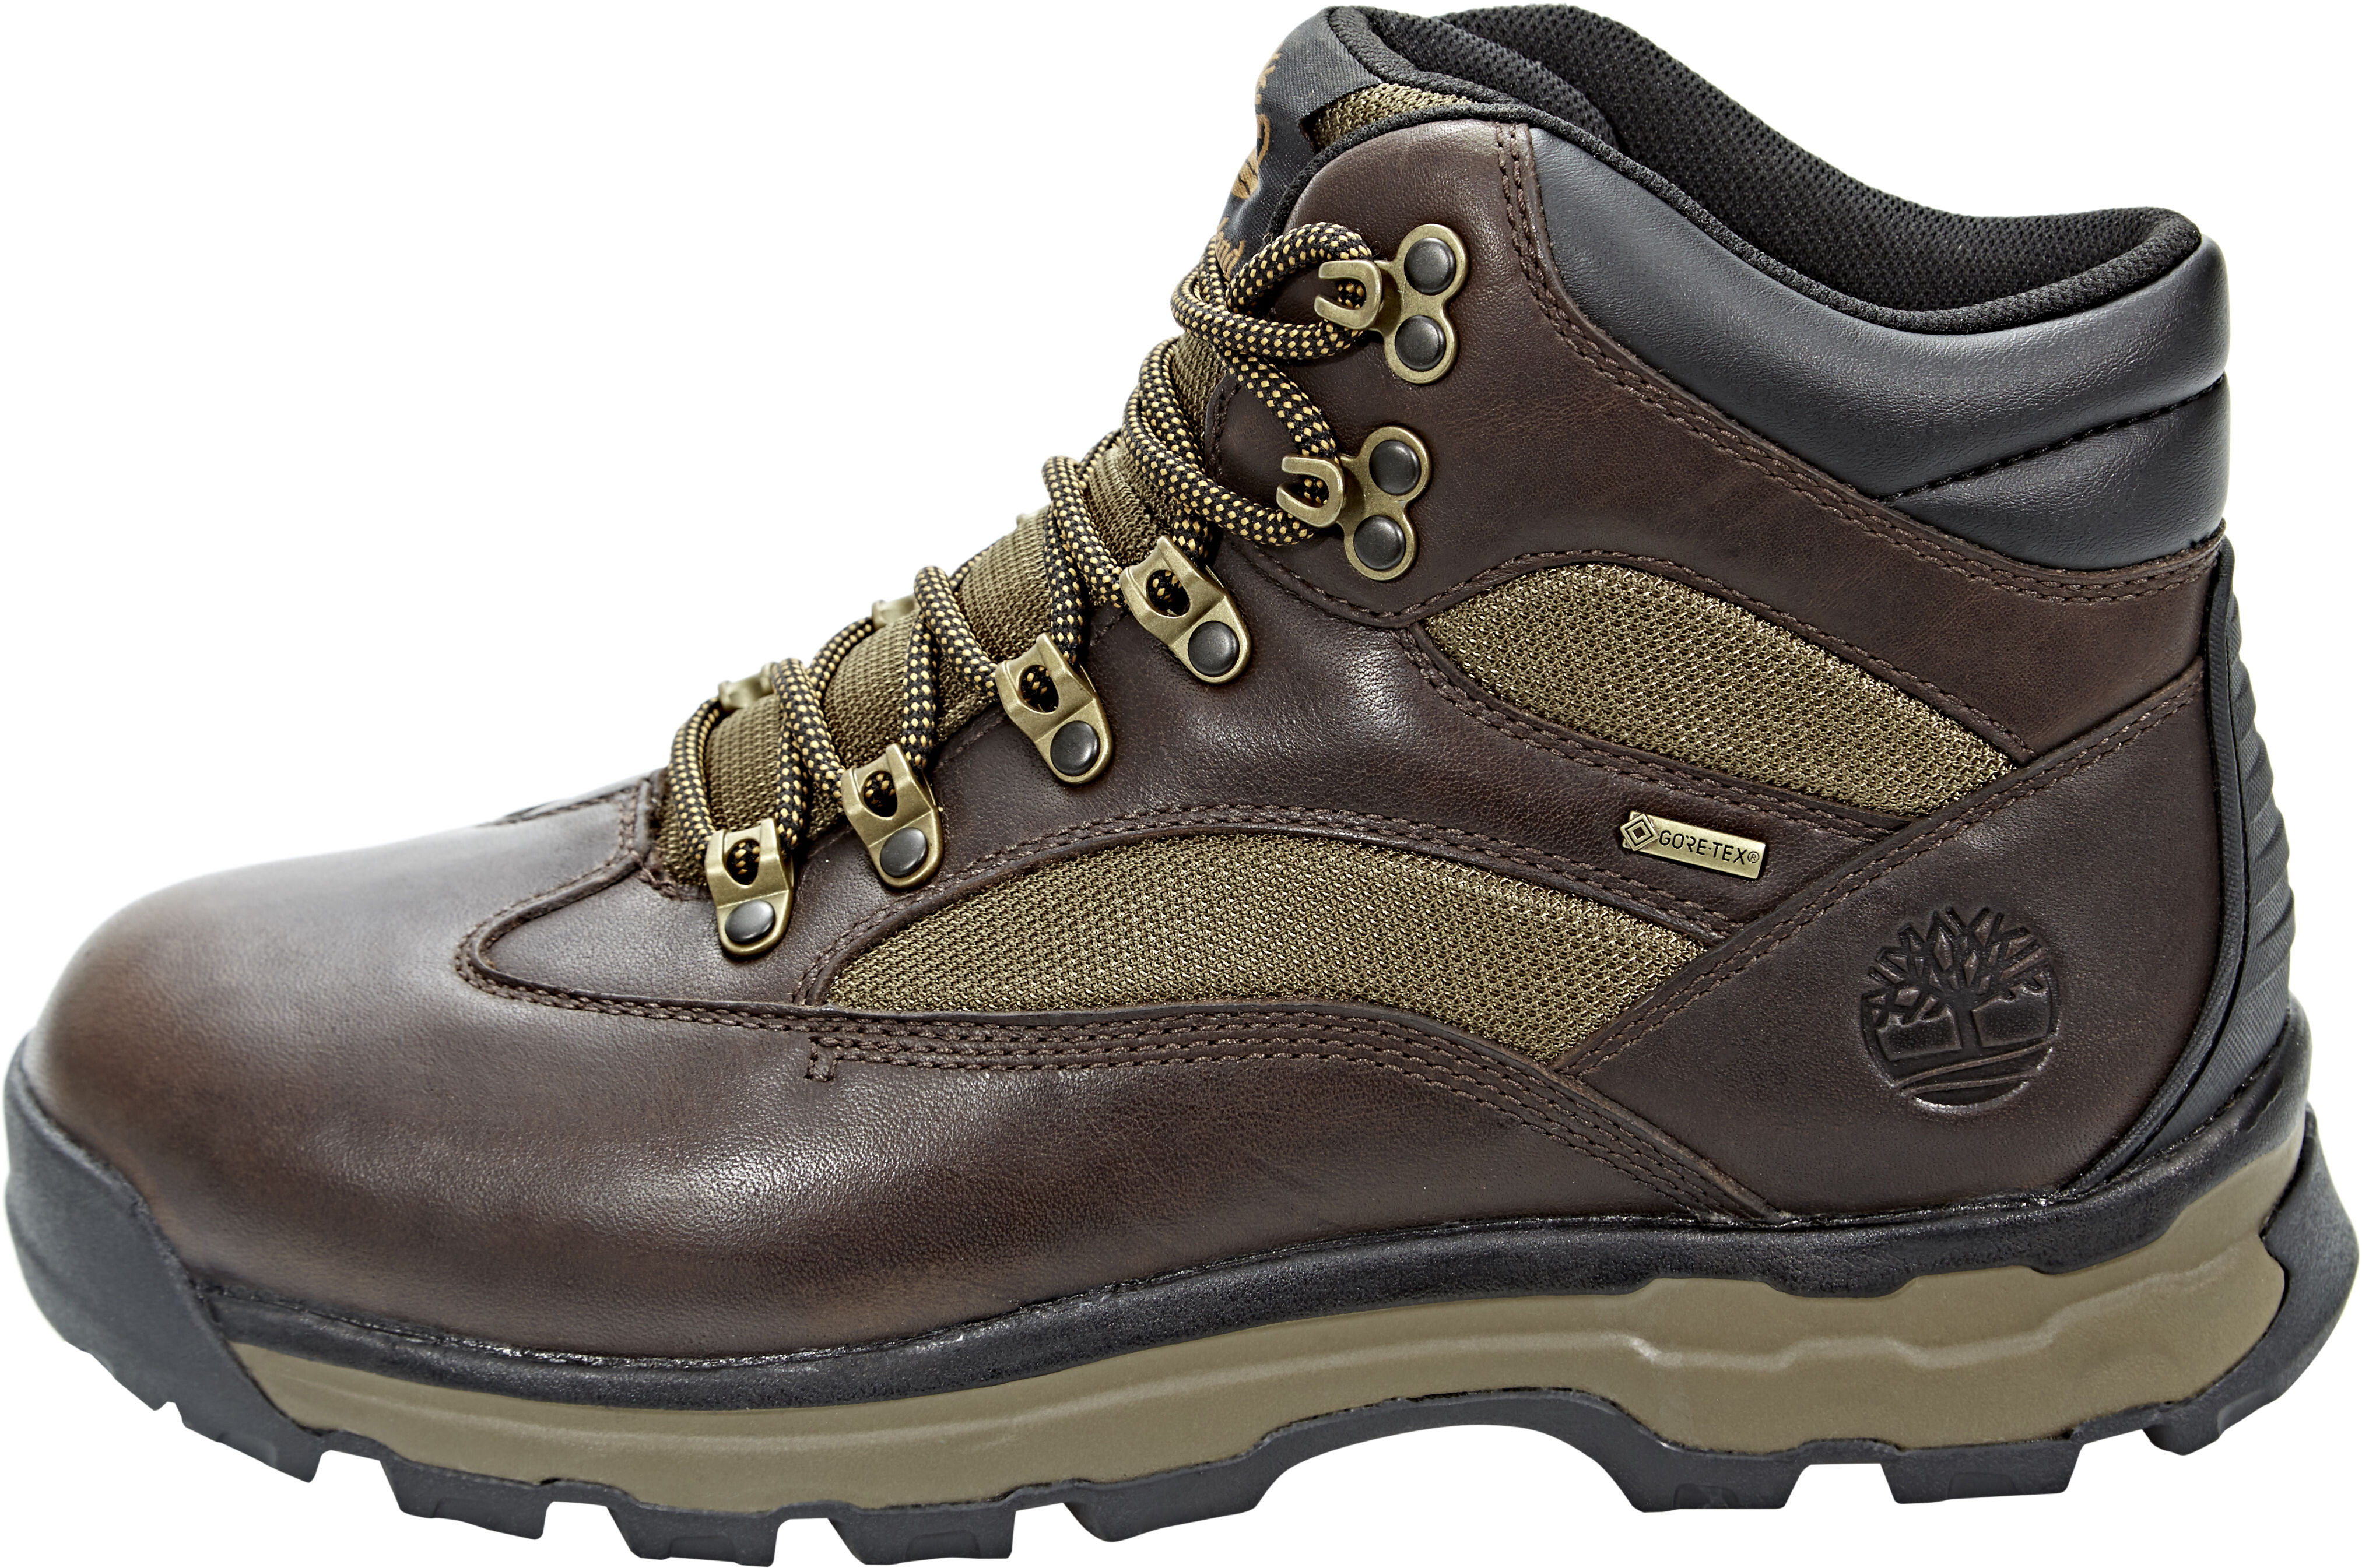 15d723ab014 Timberland Chocorua Trail 2 GTX Mid Shoes Men dark brown/green